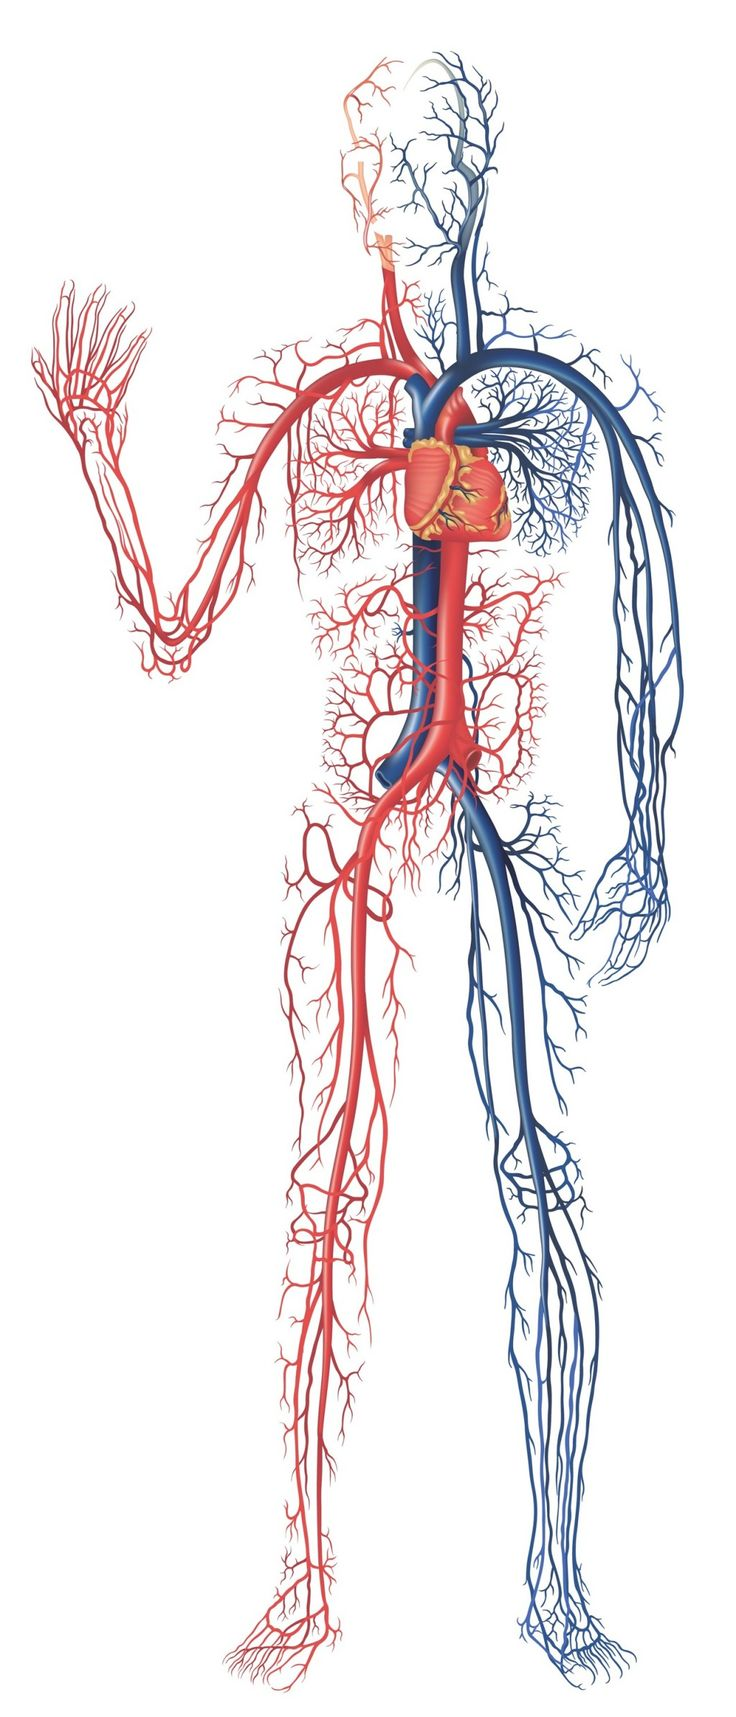 circulatory system diagram not labeled - Google Search